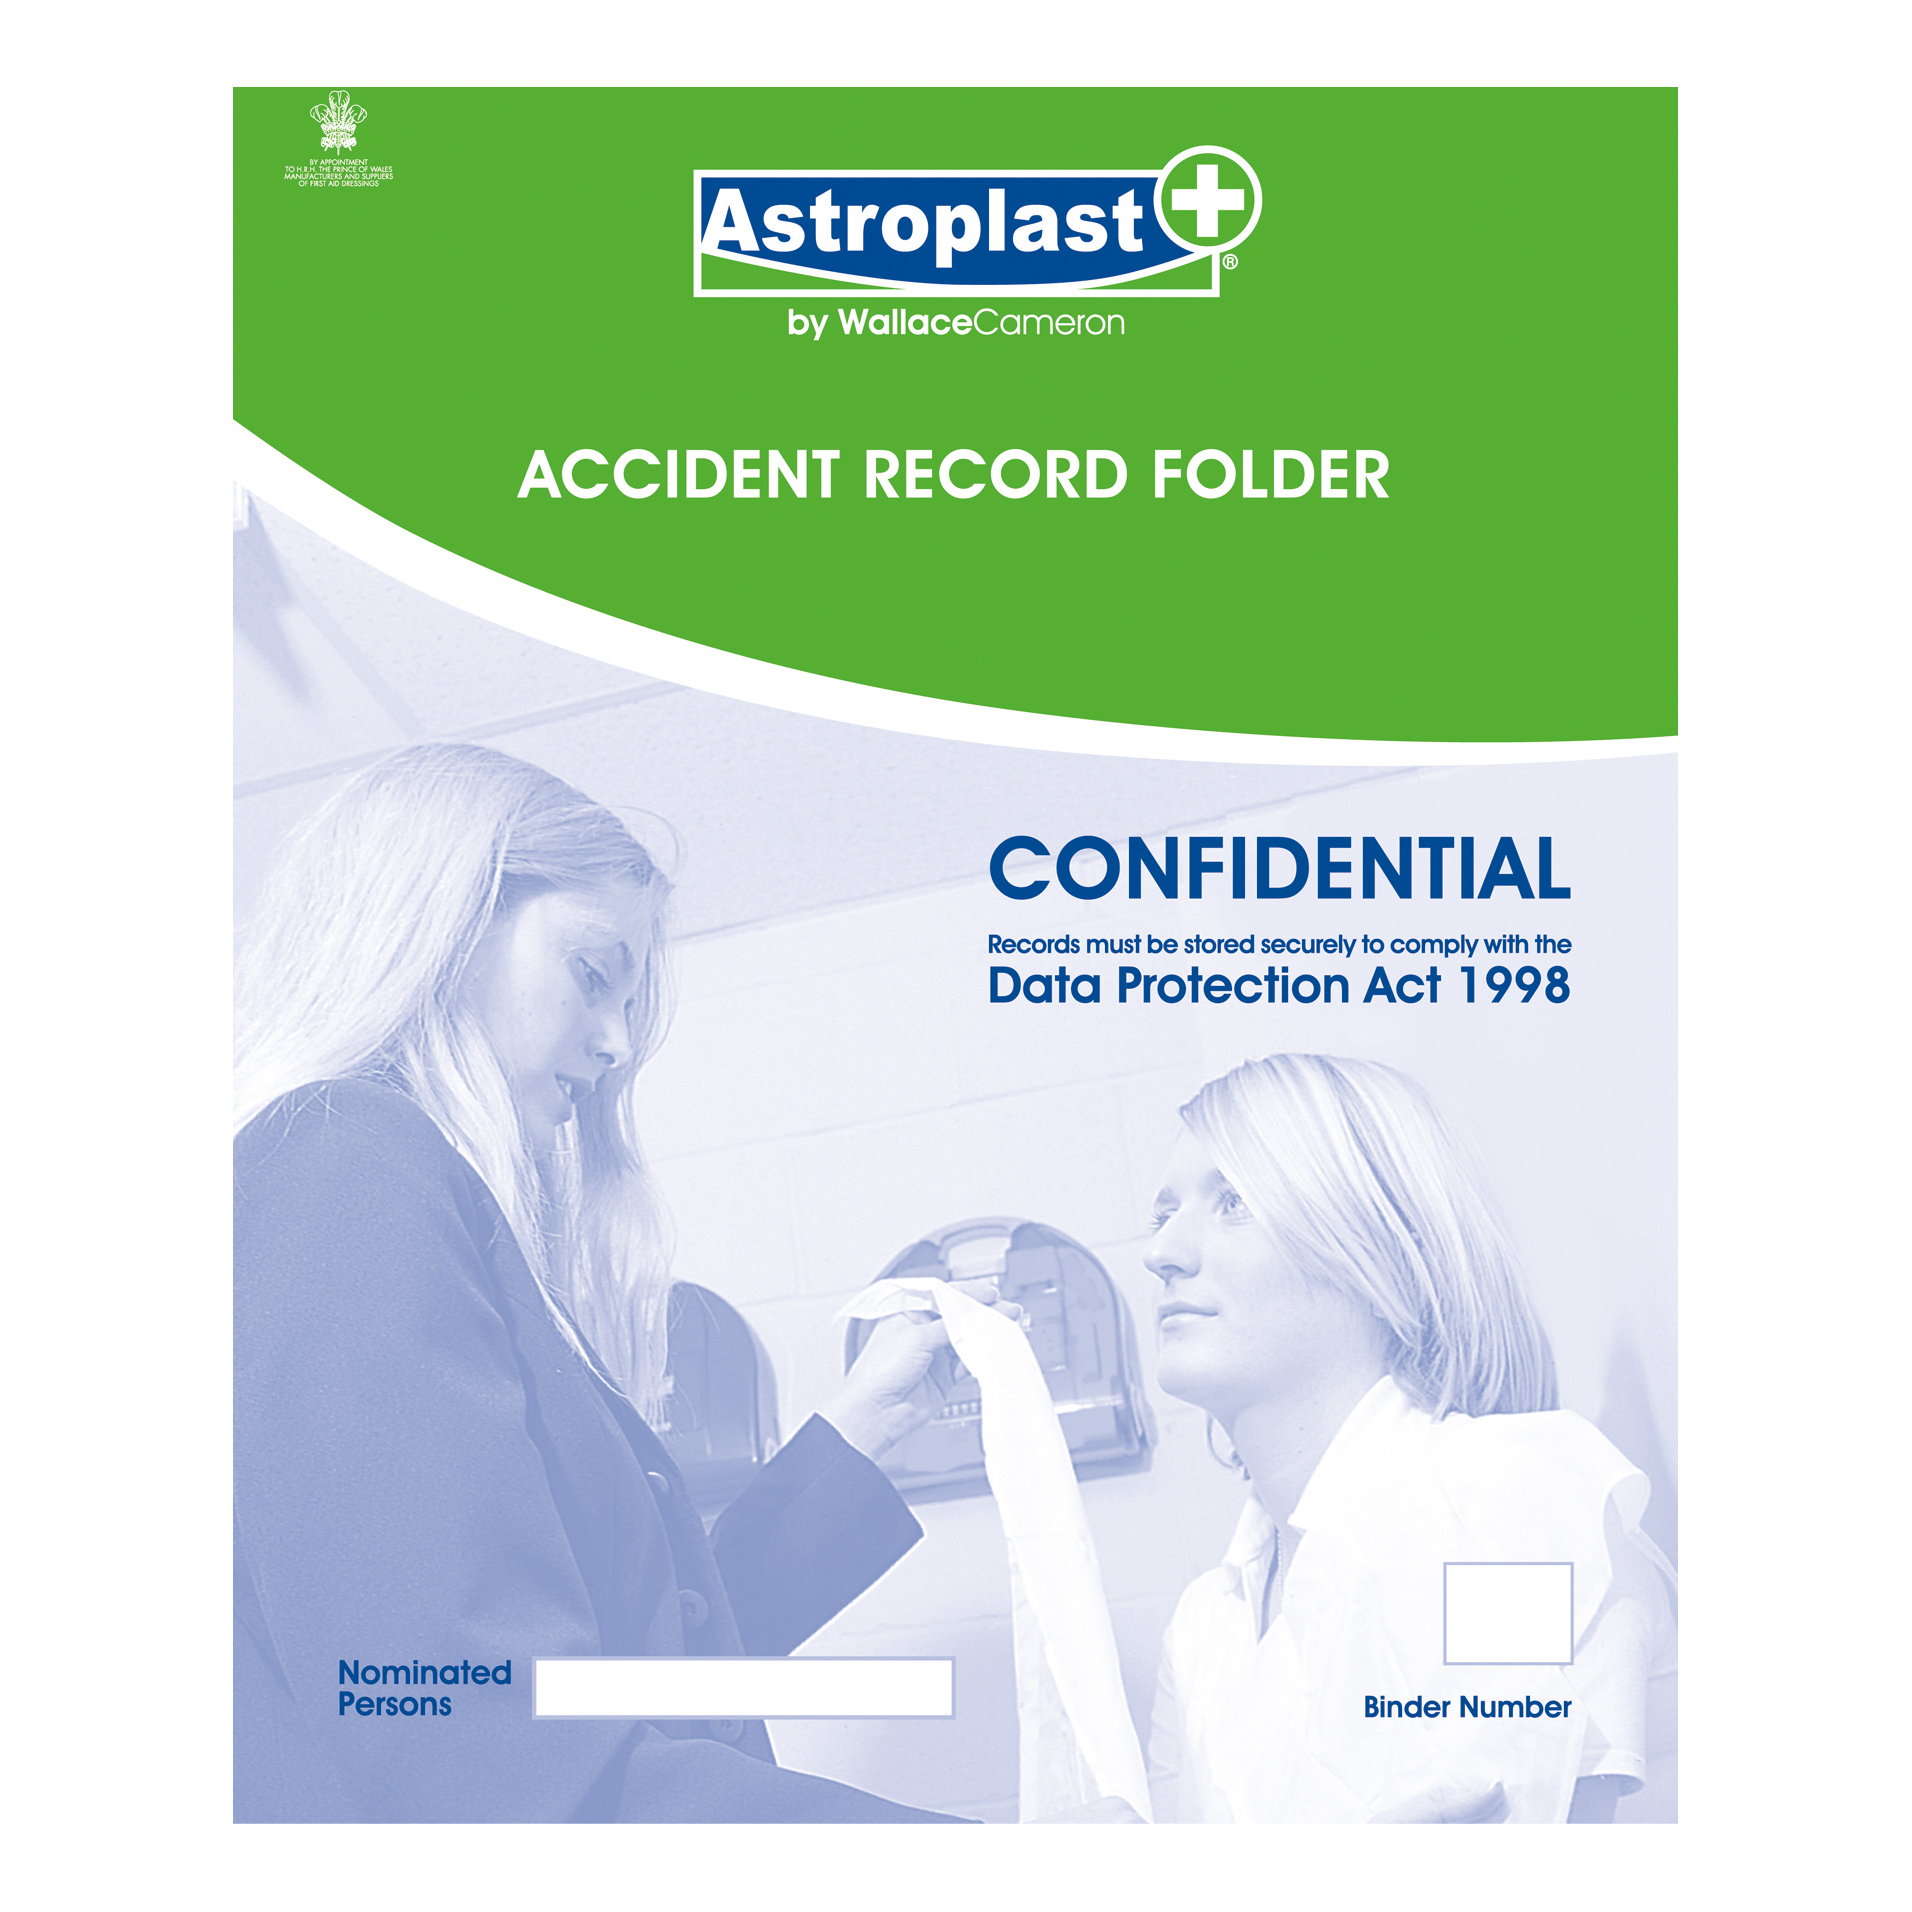 Image for Astroplast Accident Report Folder A4 Ref 5401010 (1)